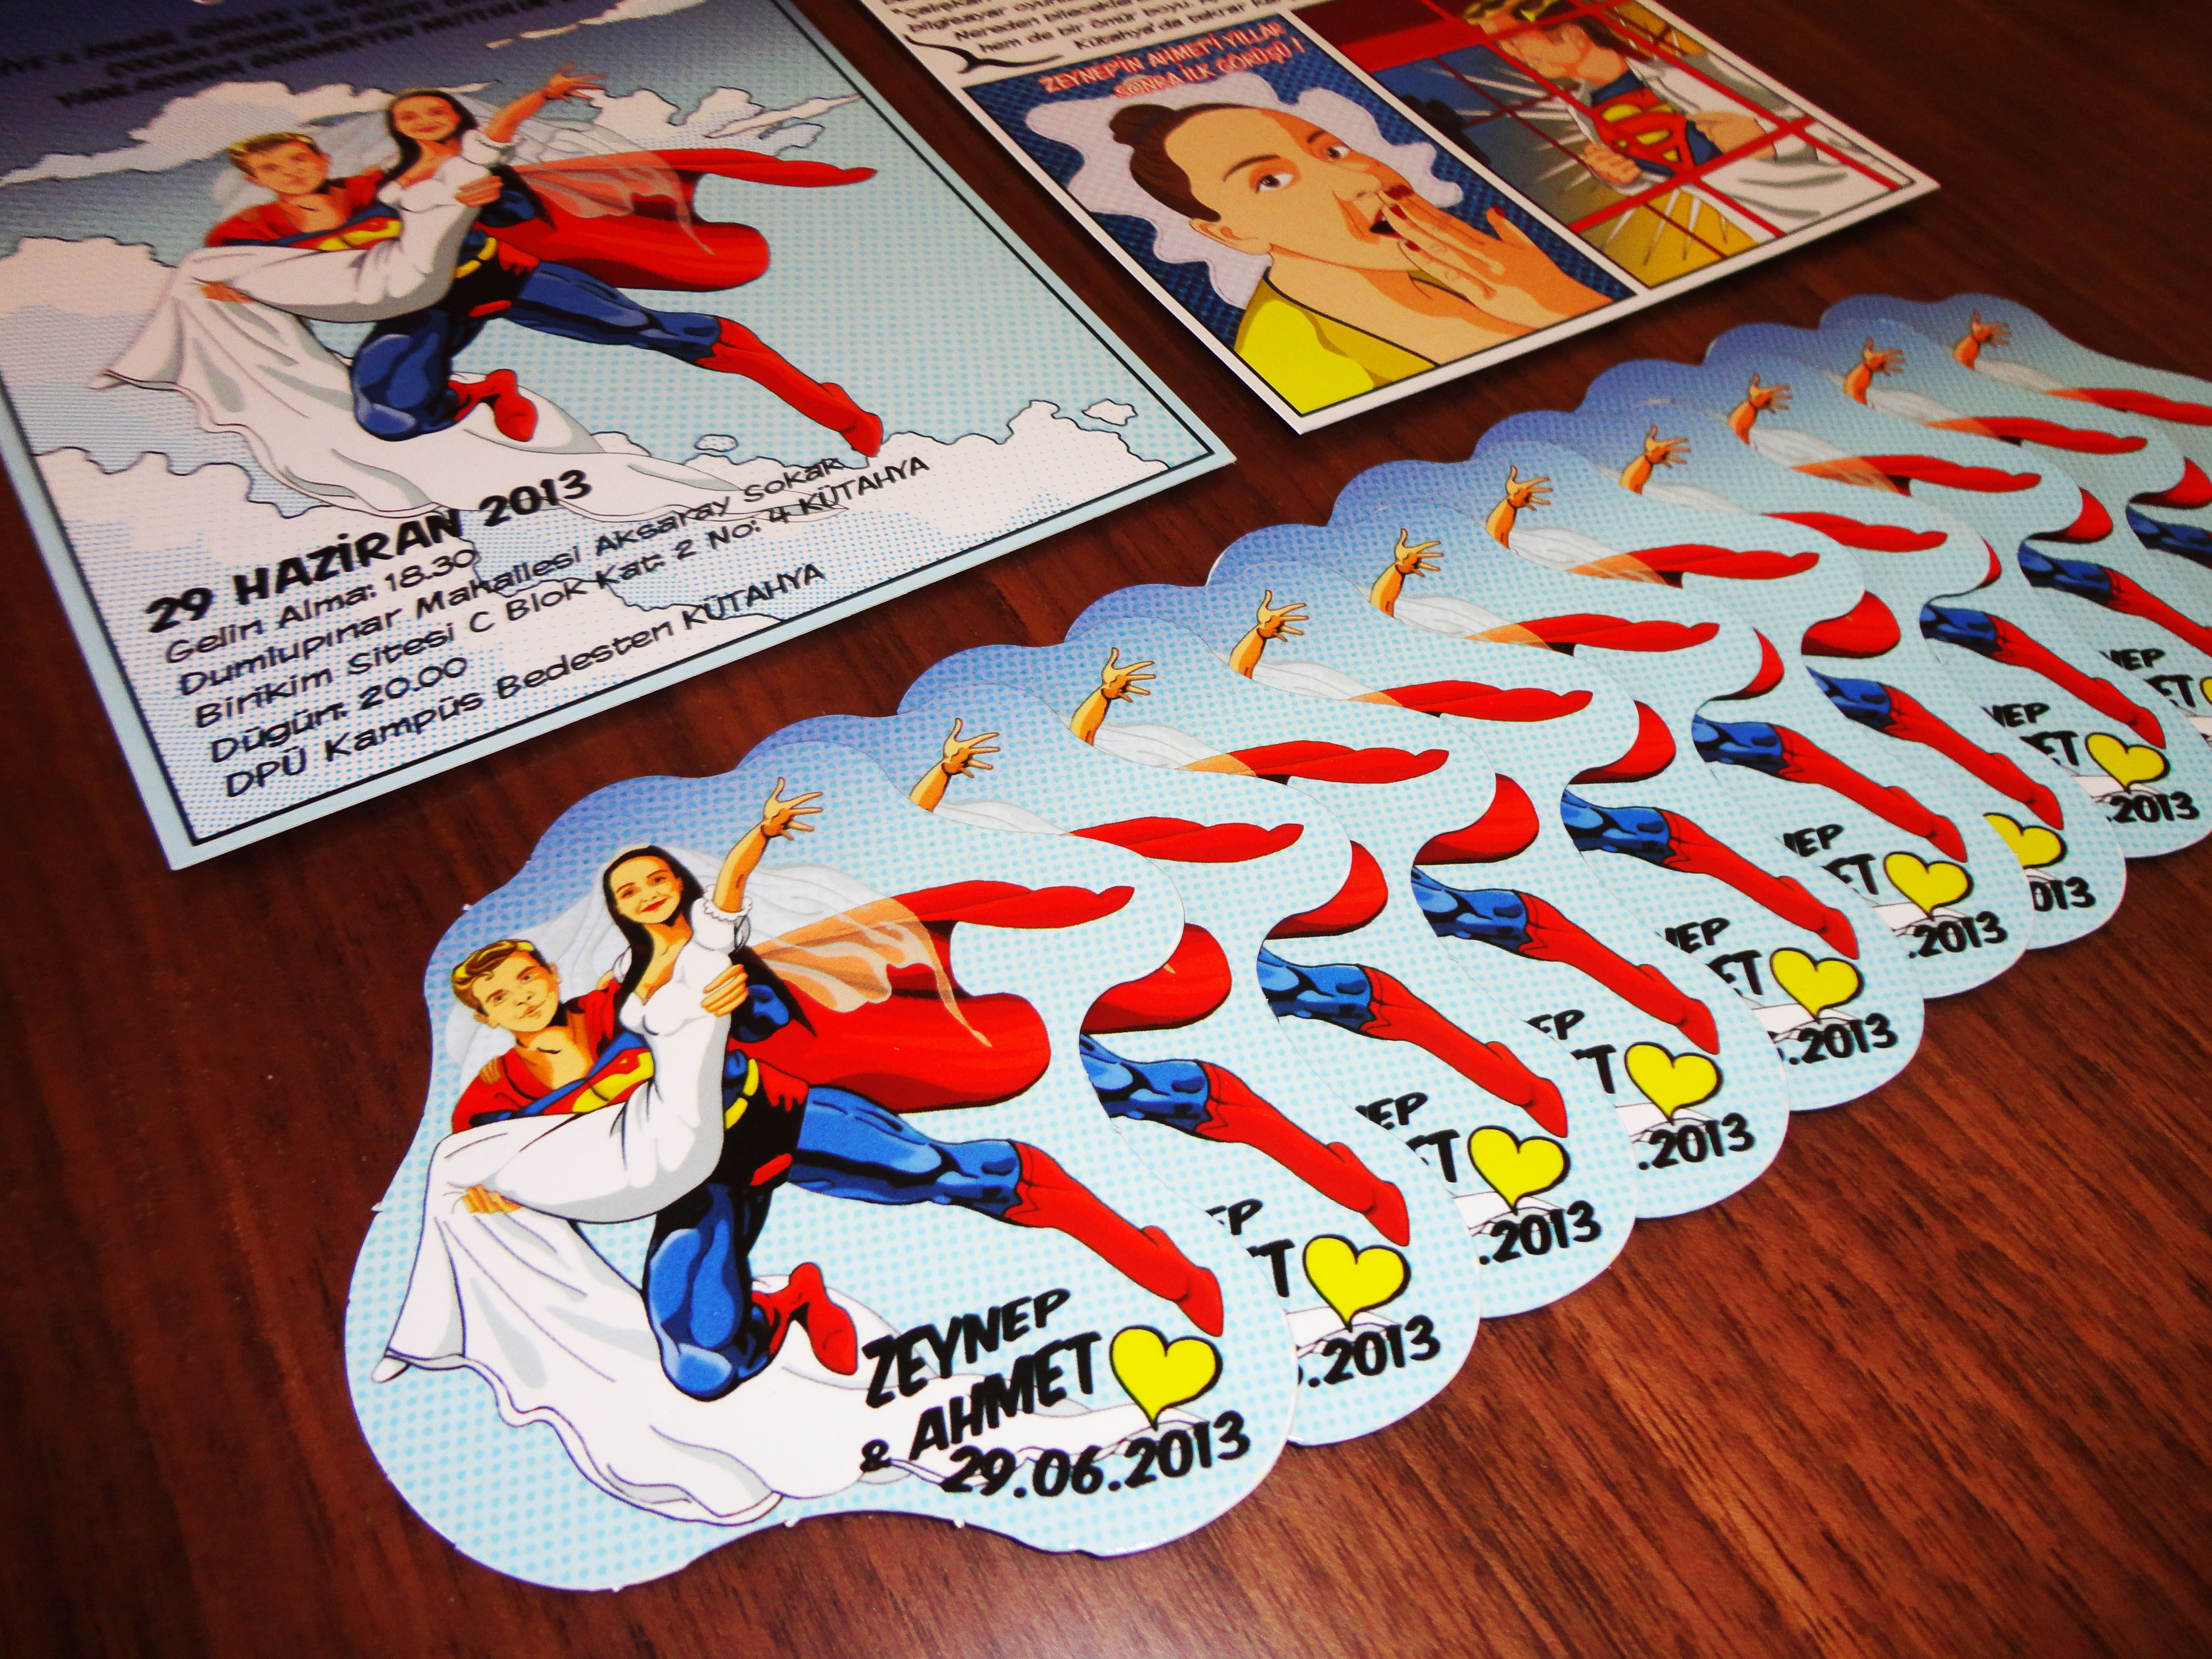 Superhero Comic Book Theme Wedding Invitation Favor Seating Chart Save The Date Table Numbers